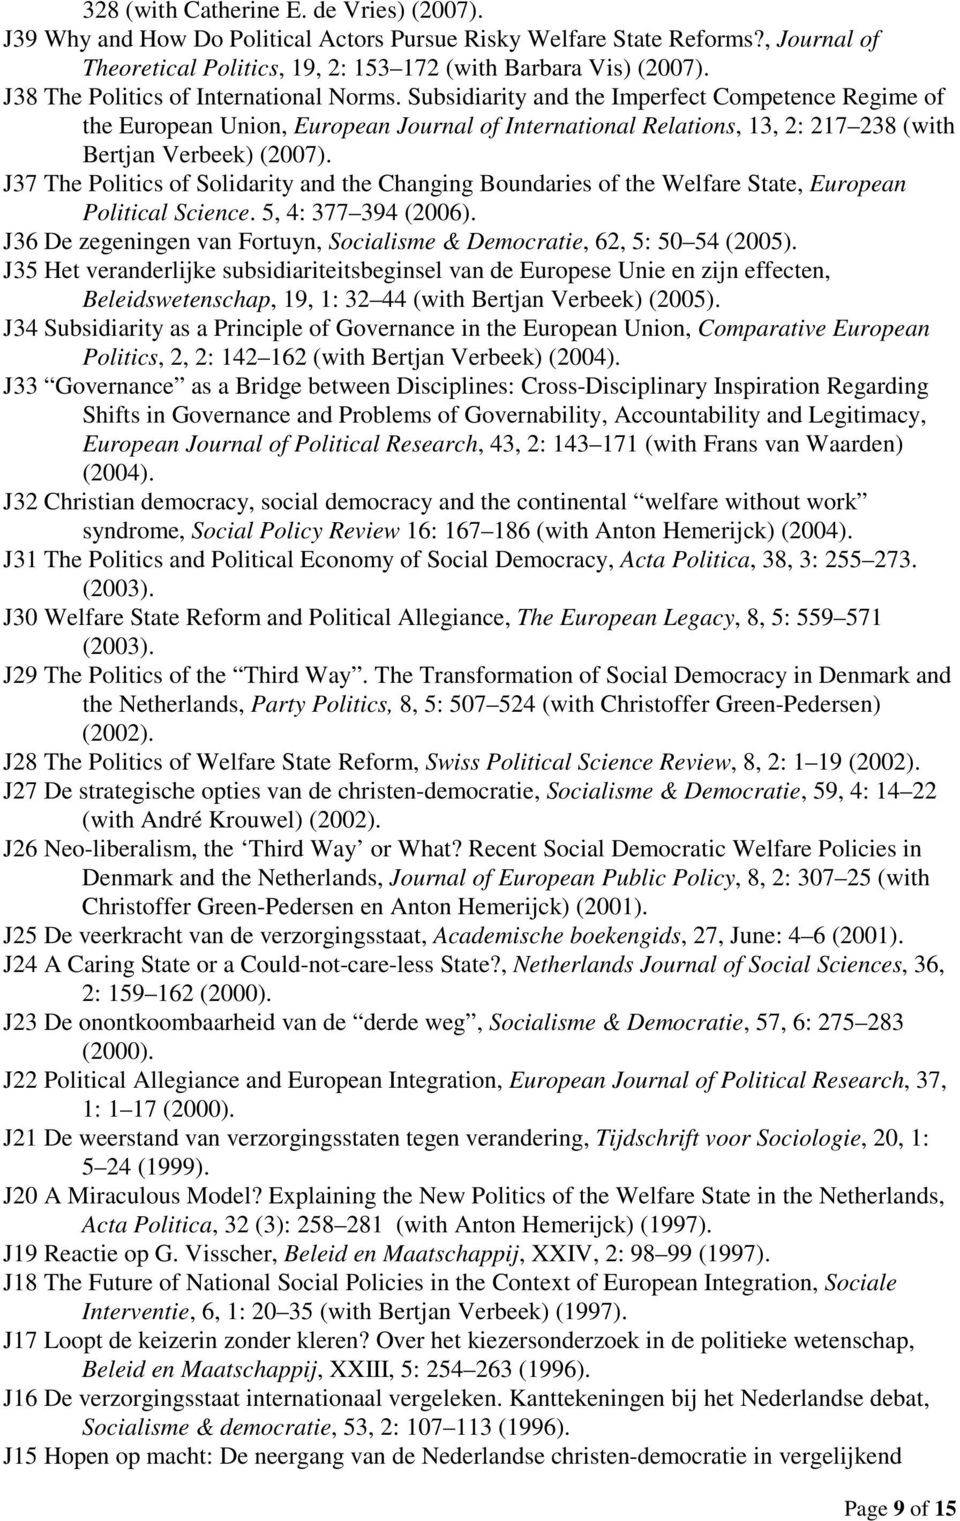 Subsidiarity and the Imperfect Competence Regime of the European Union, European Journal of International Relations, 13, 2: 217 238 (with Bertjan Verbeek) (2007).